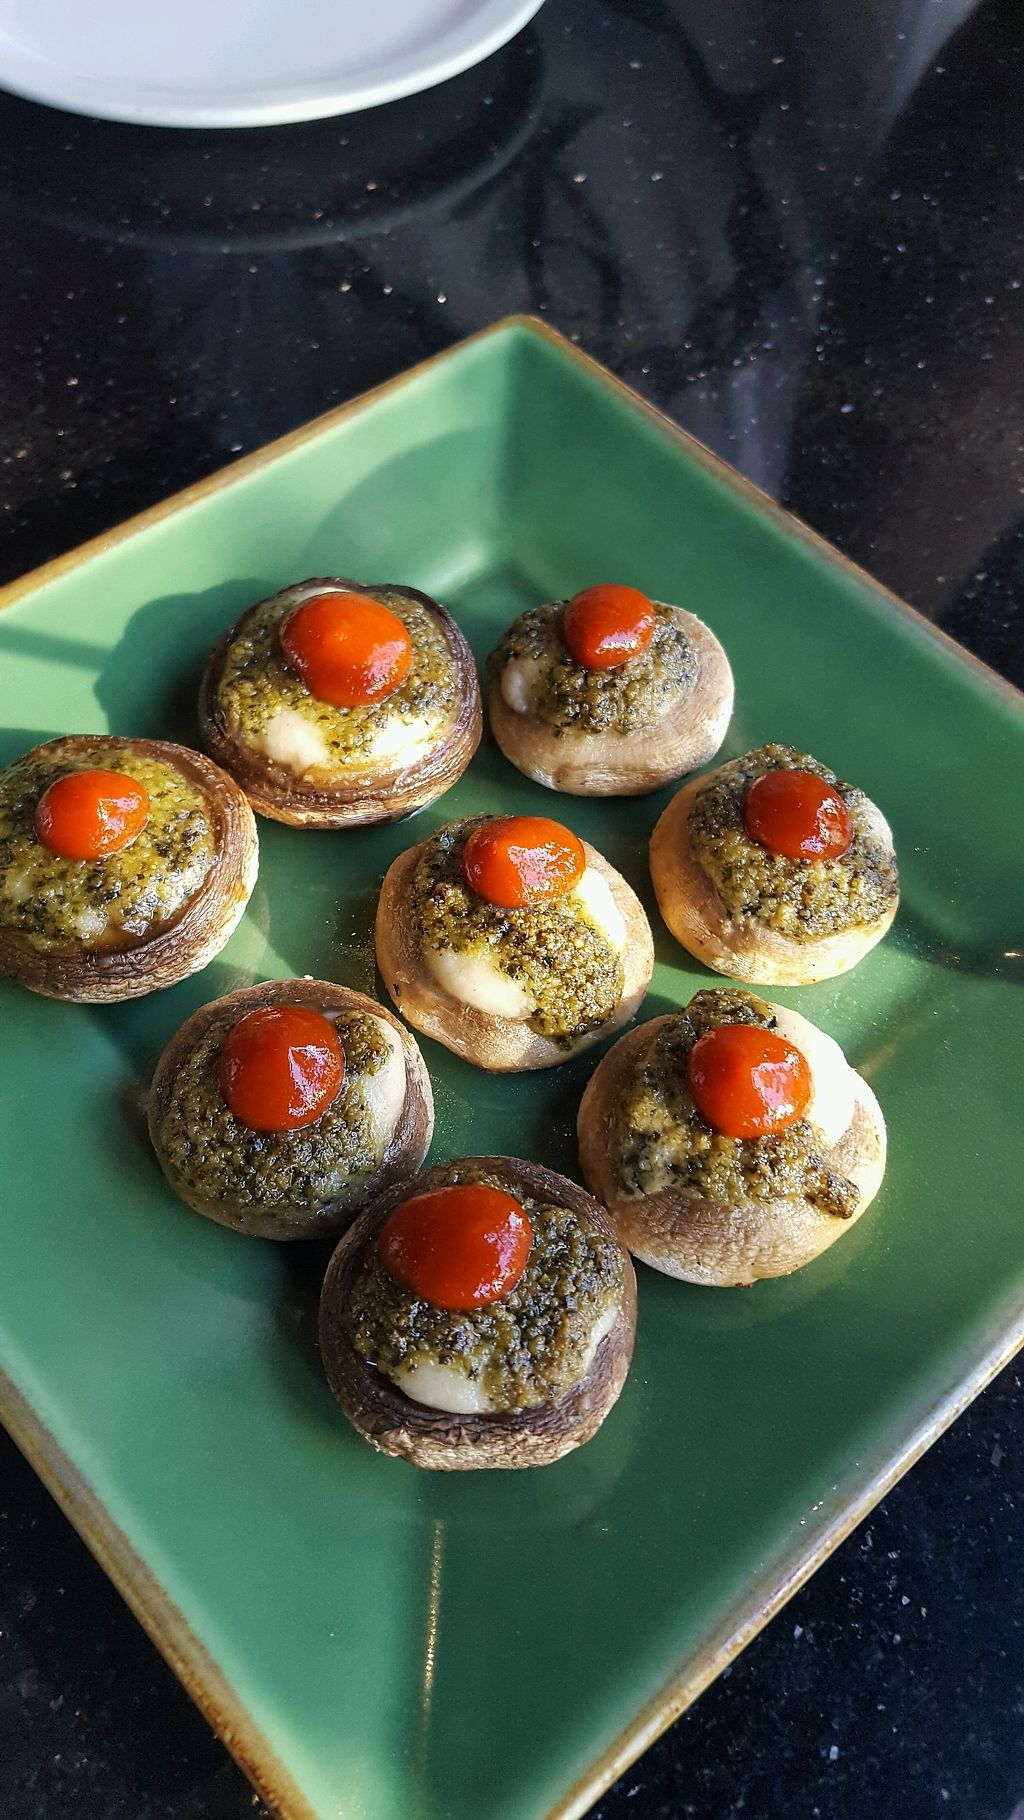 "Photo of CyBelle's Front Room  by <a href=""/members/profile/VeganScientist"">VeganScientist</a> <br/>Siracha topped stuffed mushroom caps with cashew cheese and pesto <br/> September 12, 2017  - <a href='/contact/abuse/image/100785/303657'>Report</a>"